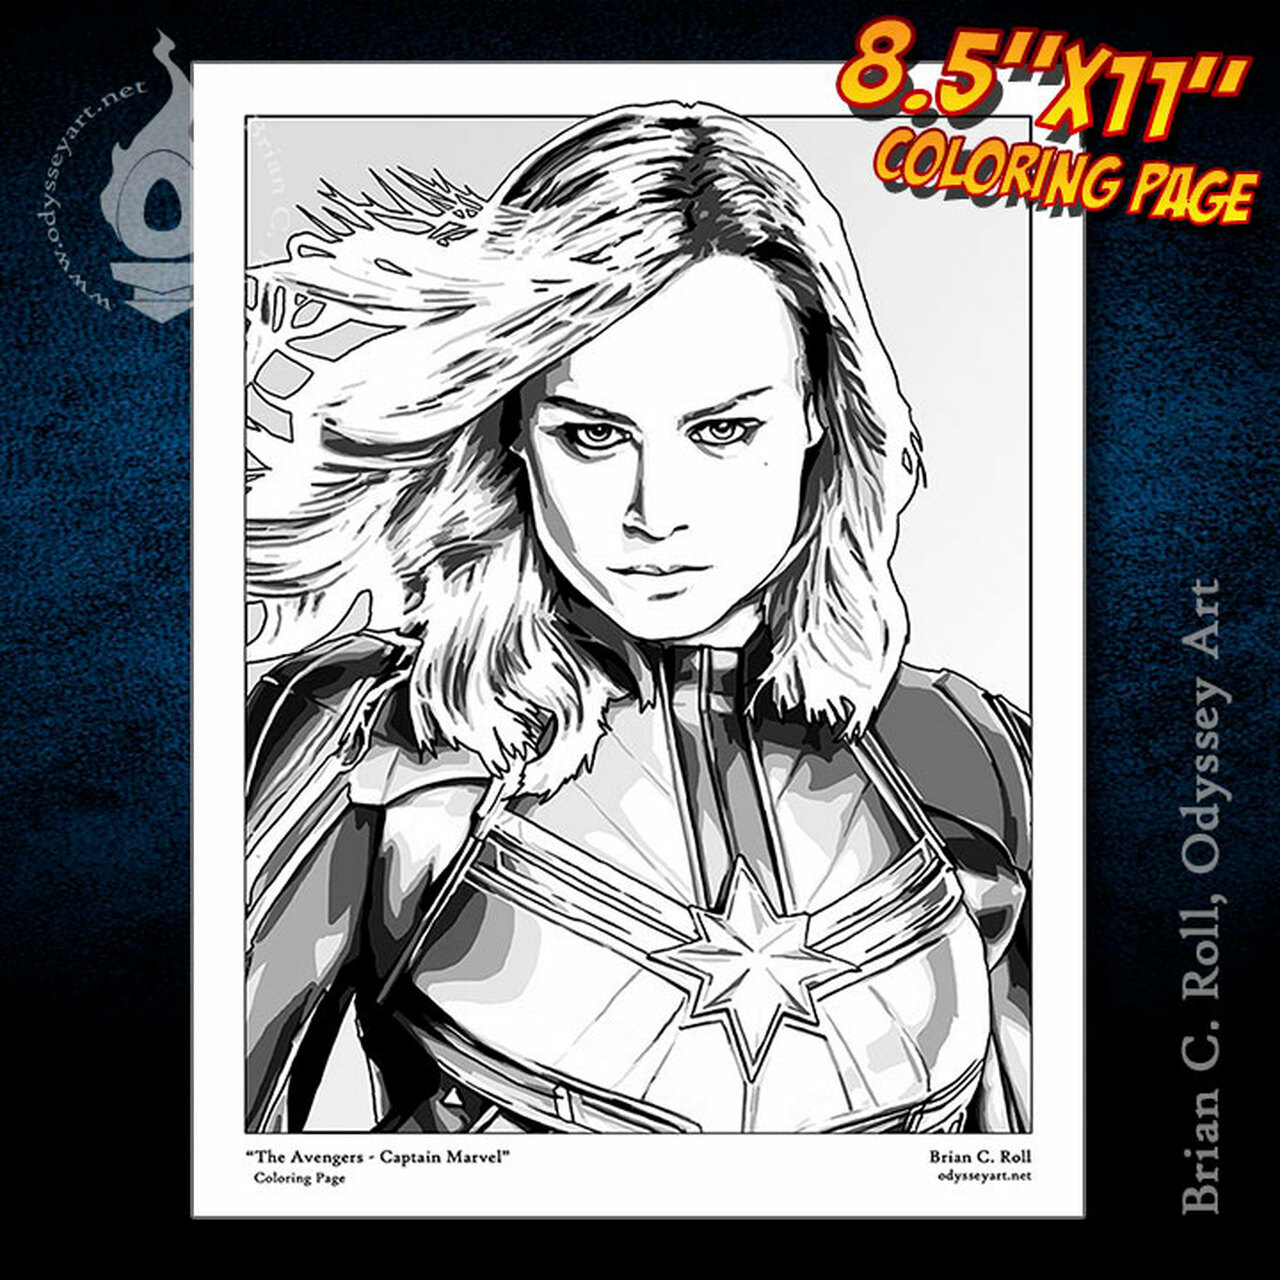 Captain Marvel Coloring Page Odyssey Art Art Of Brian C Roll